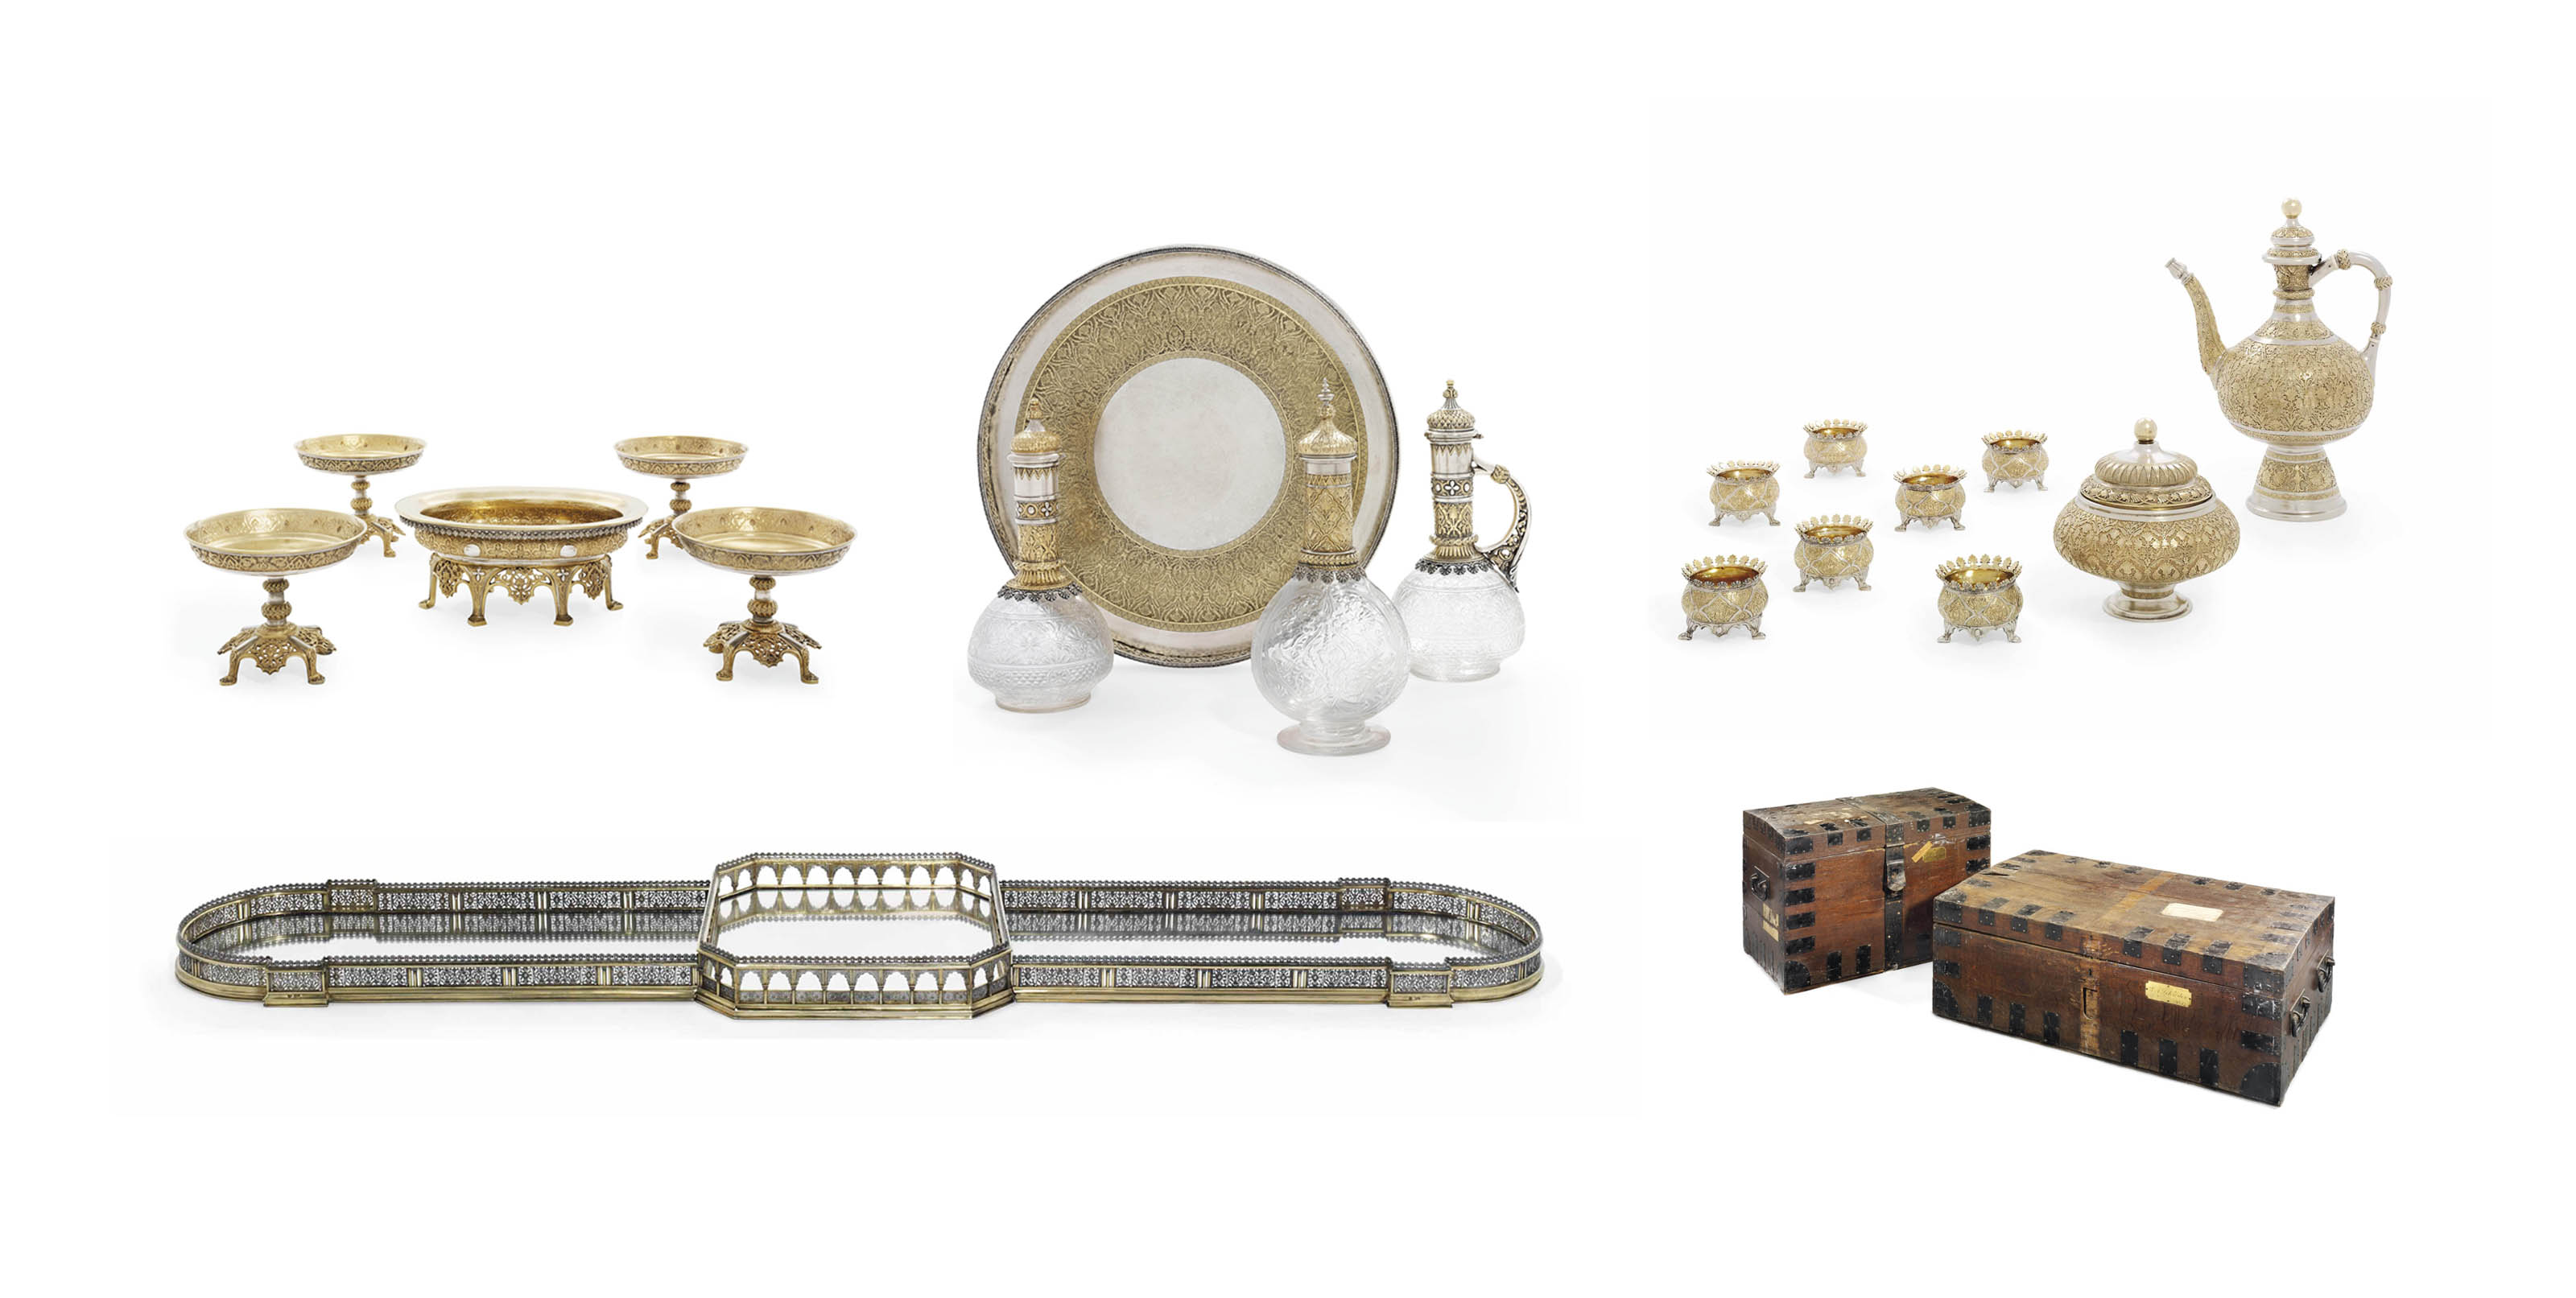 A VICTORIAN PARCEL-GILT SILVER AND ENGRAVED GLASS PART DINNER-SERVICE AND SURTOUT-DE-TABLE